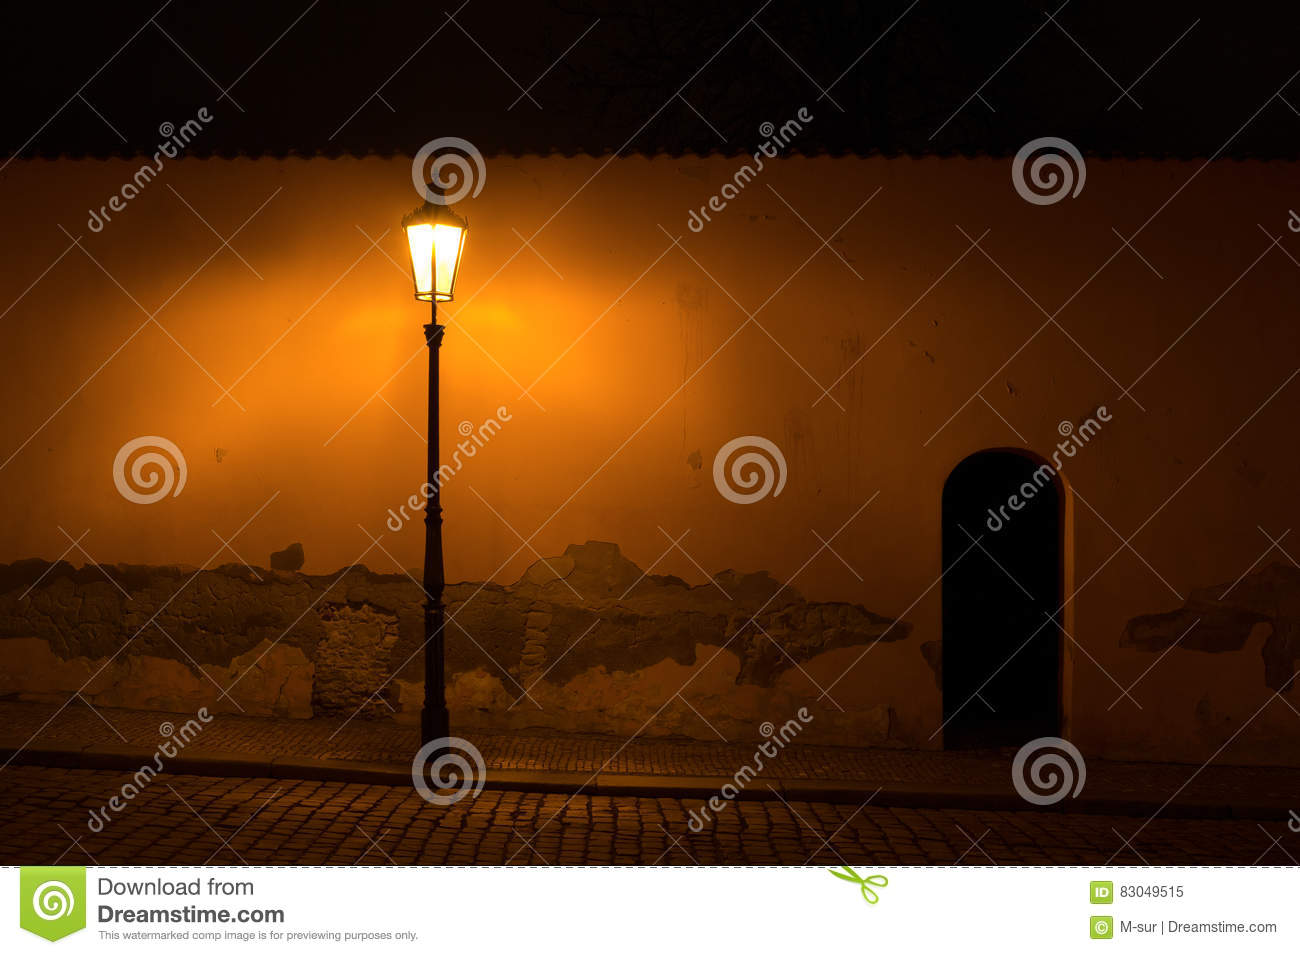 Street With Old Retro Lamp Post In Front Of The Wall Cracked Plaster Dark Scenery During Night Scene Is Lit By Poor Yellow Light Lantern